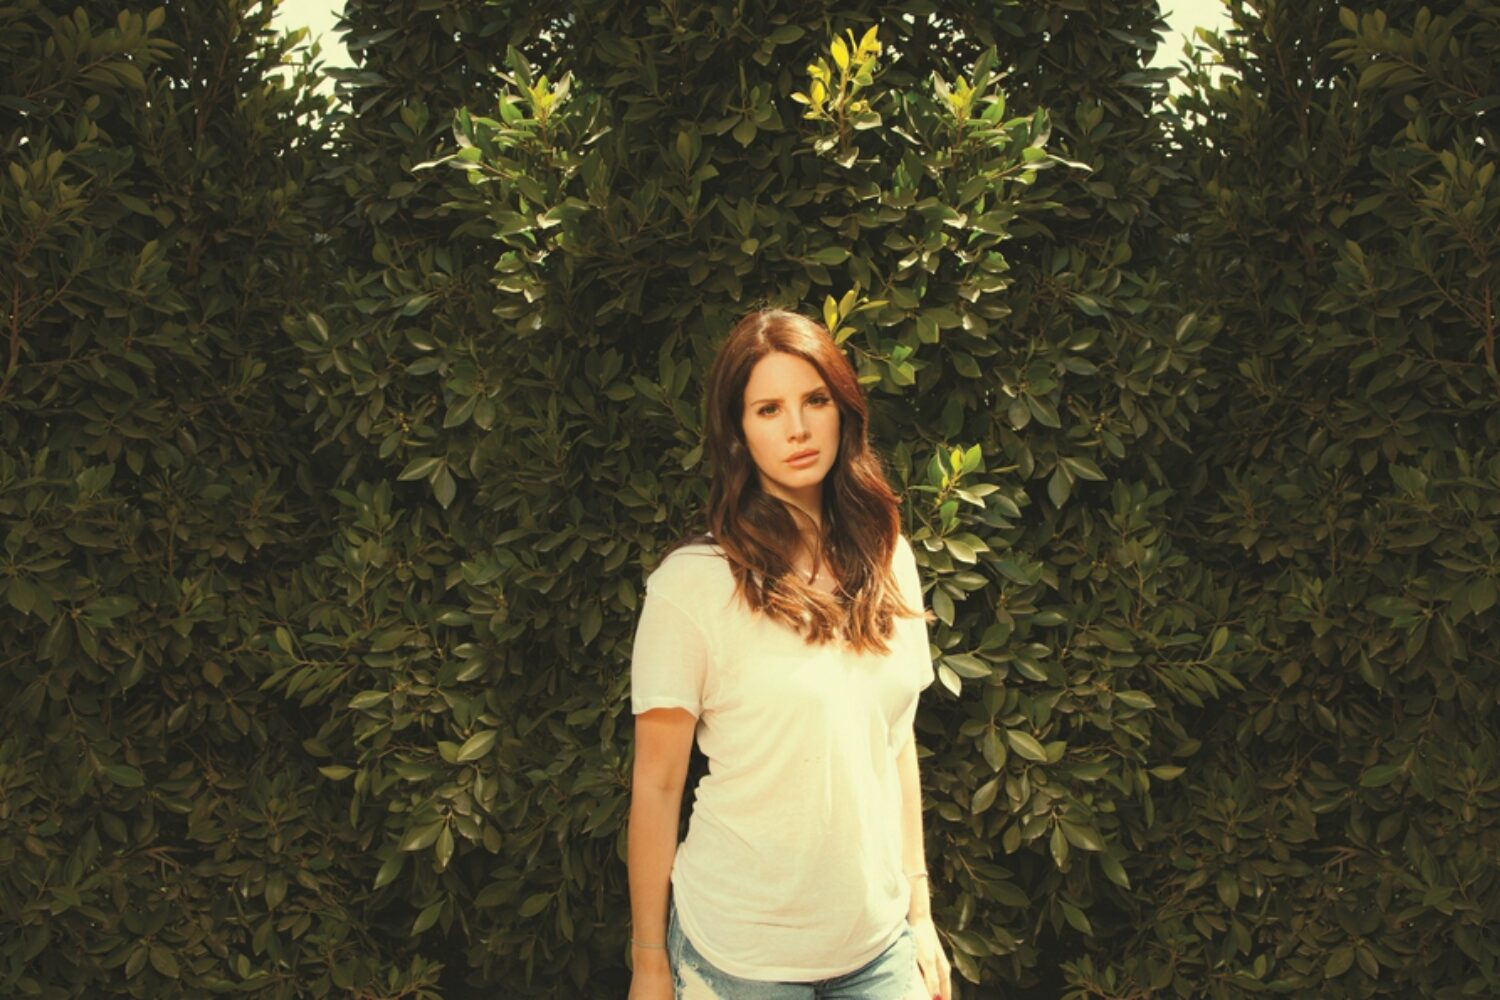 Lana Del Rey's 'Honeymoon' is due out this September